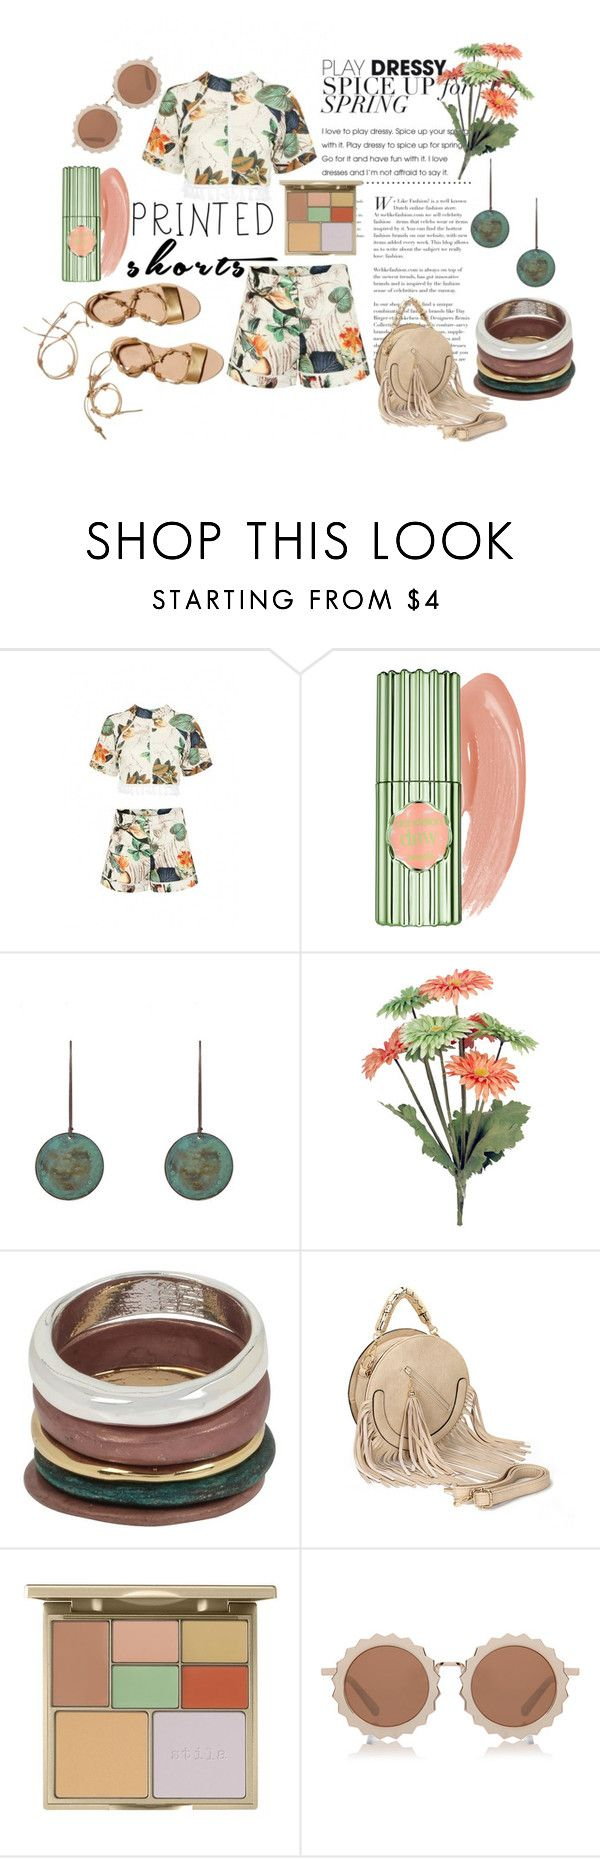 """Prints Charming: A Shorts Story"" by love-blair-serena ❤ liked on Polyvore featuring Benefit, Loeffler Randall, Robert Lee Morris, Stila, House of Holland and printedshorts"